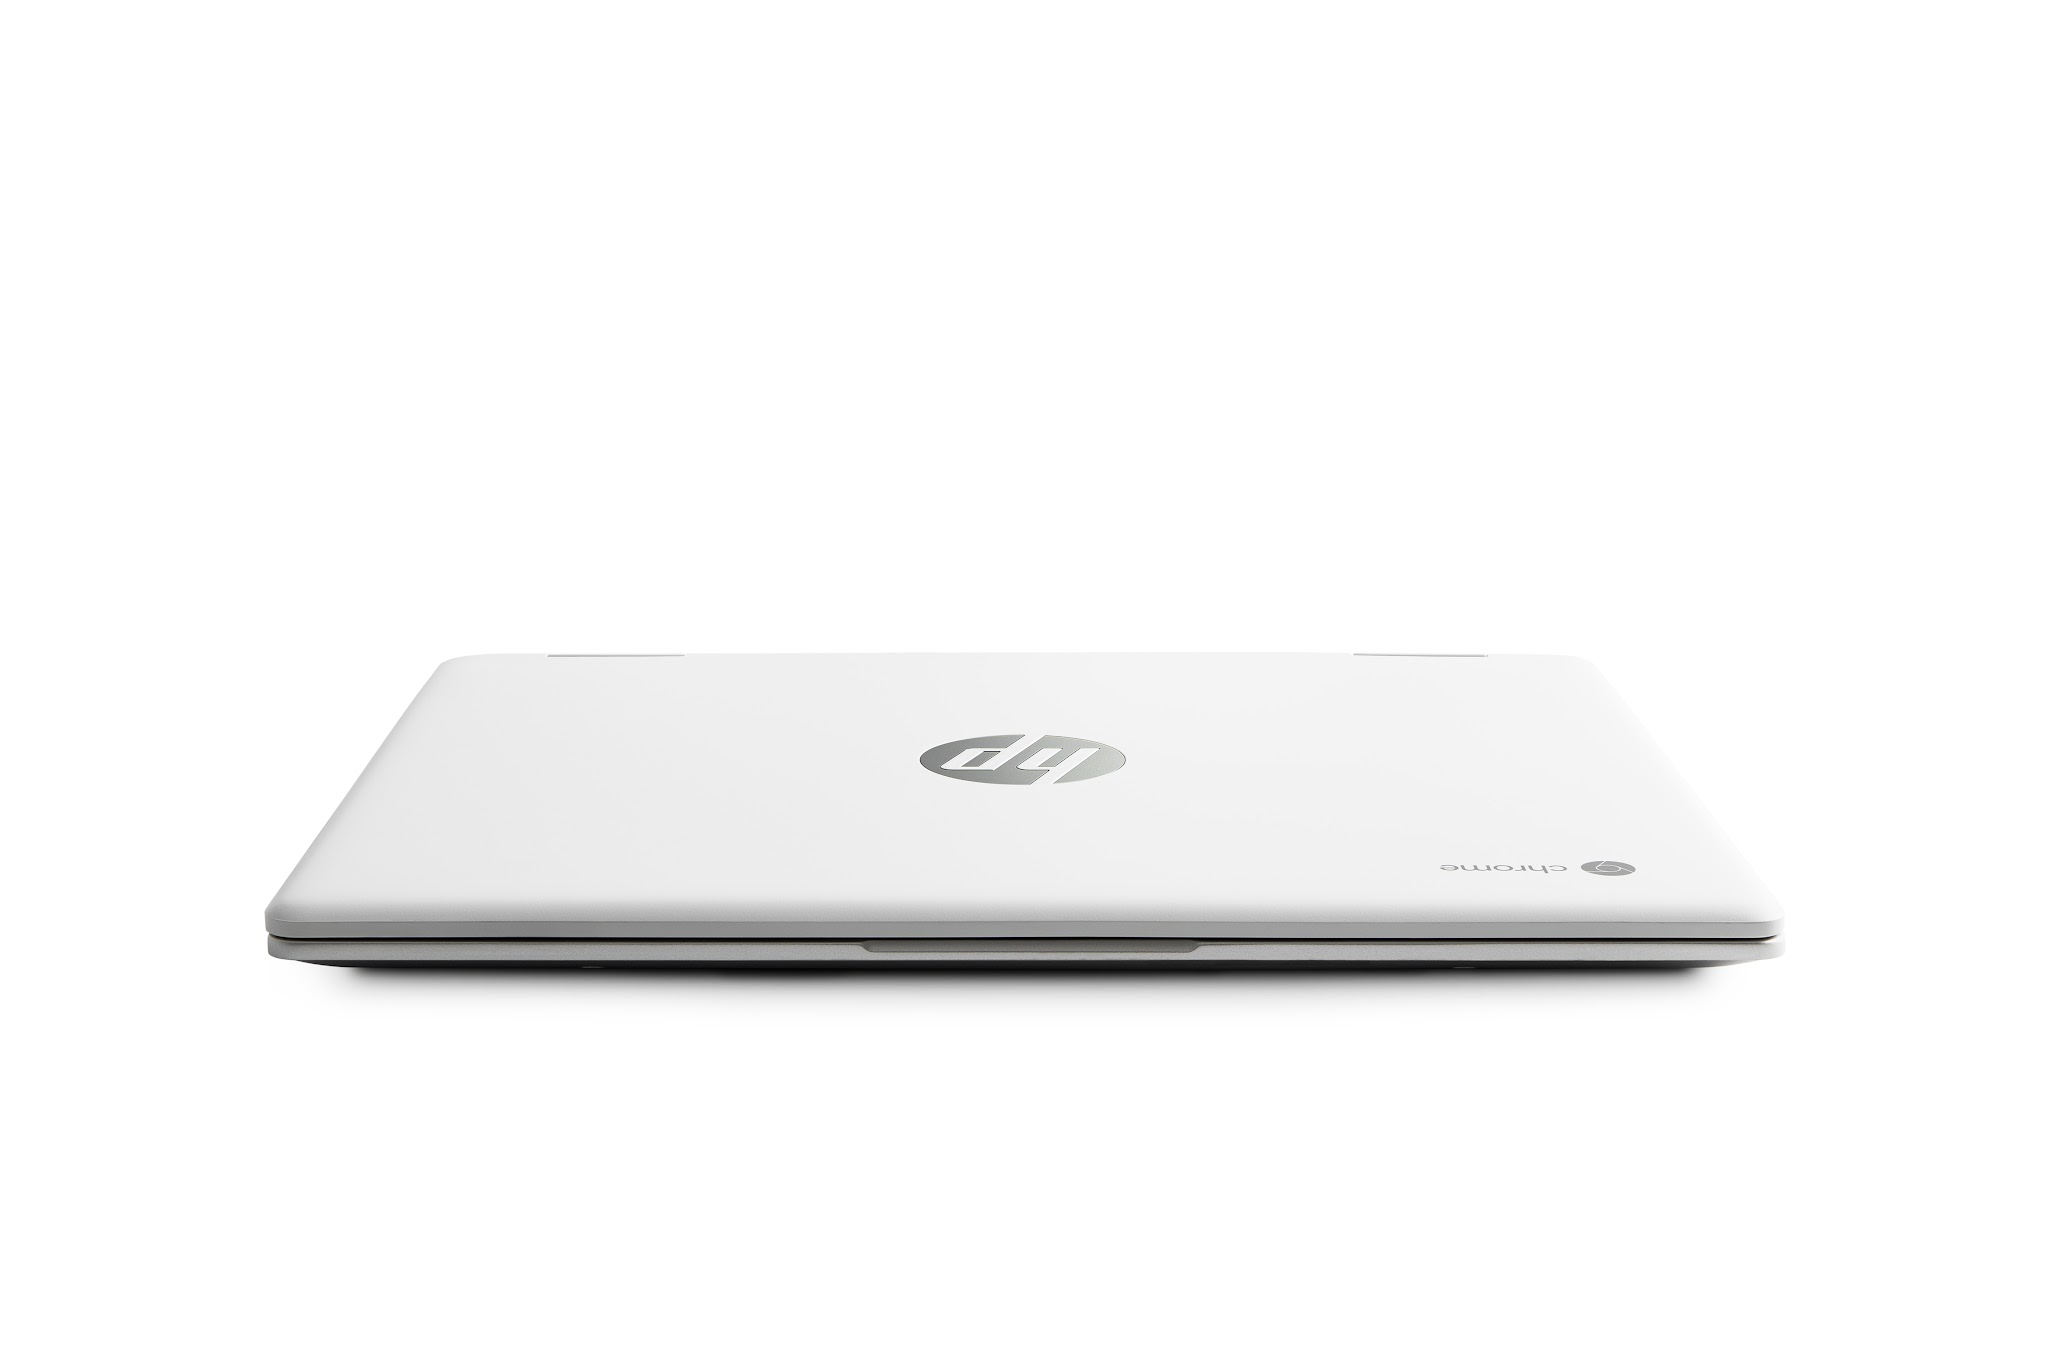 HP Chromebook x360 12b - photo 15